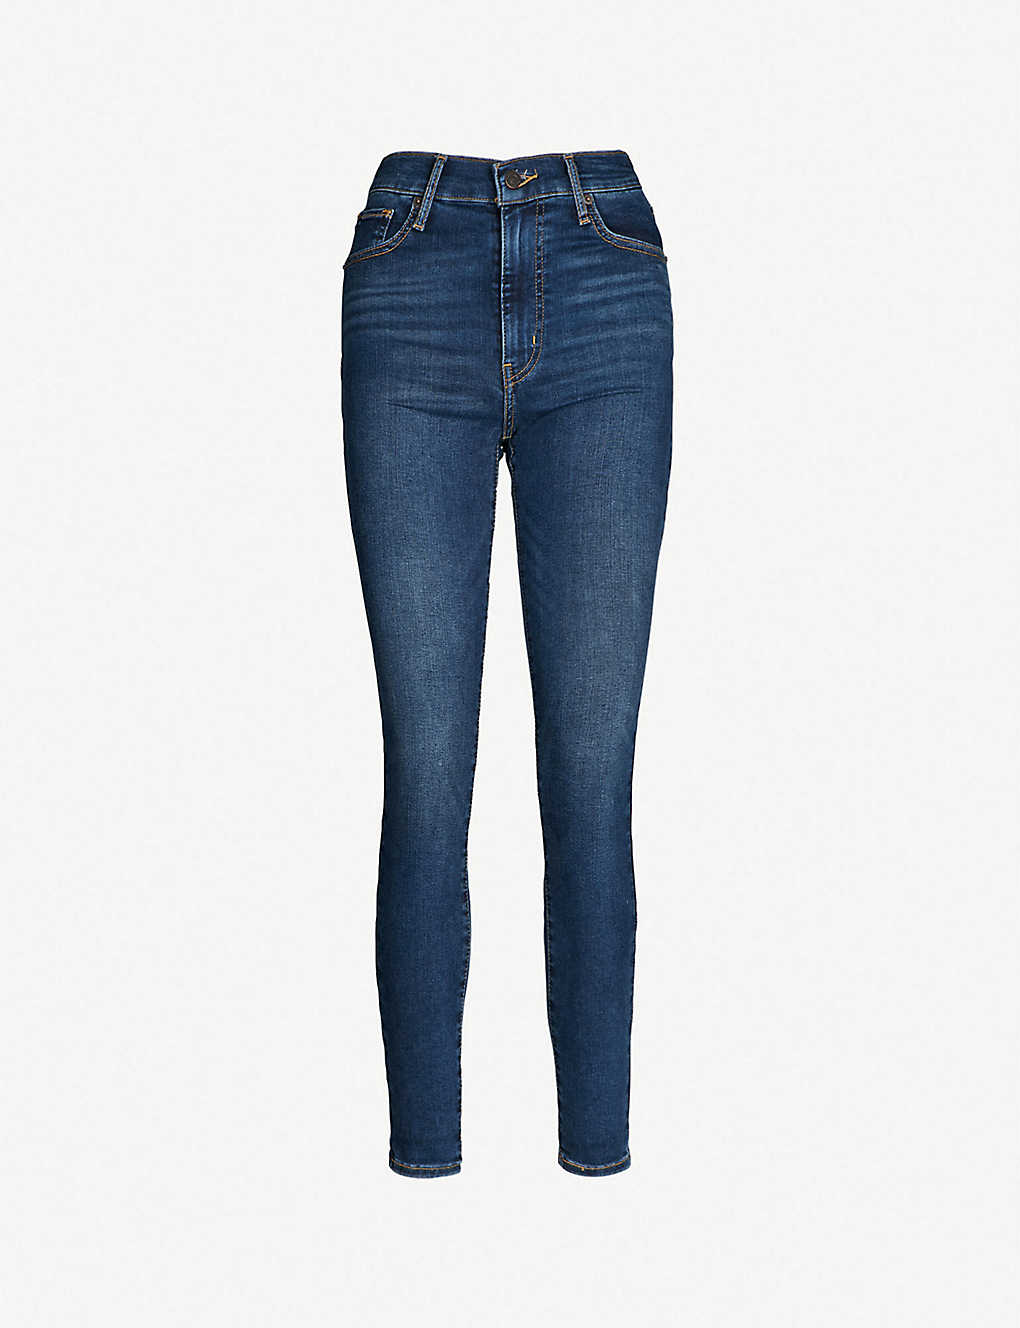 fede9ded LEVI'S - Mile High super-skinny extra high-rise jeans | Selfridges.com